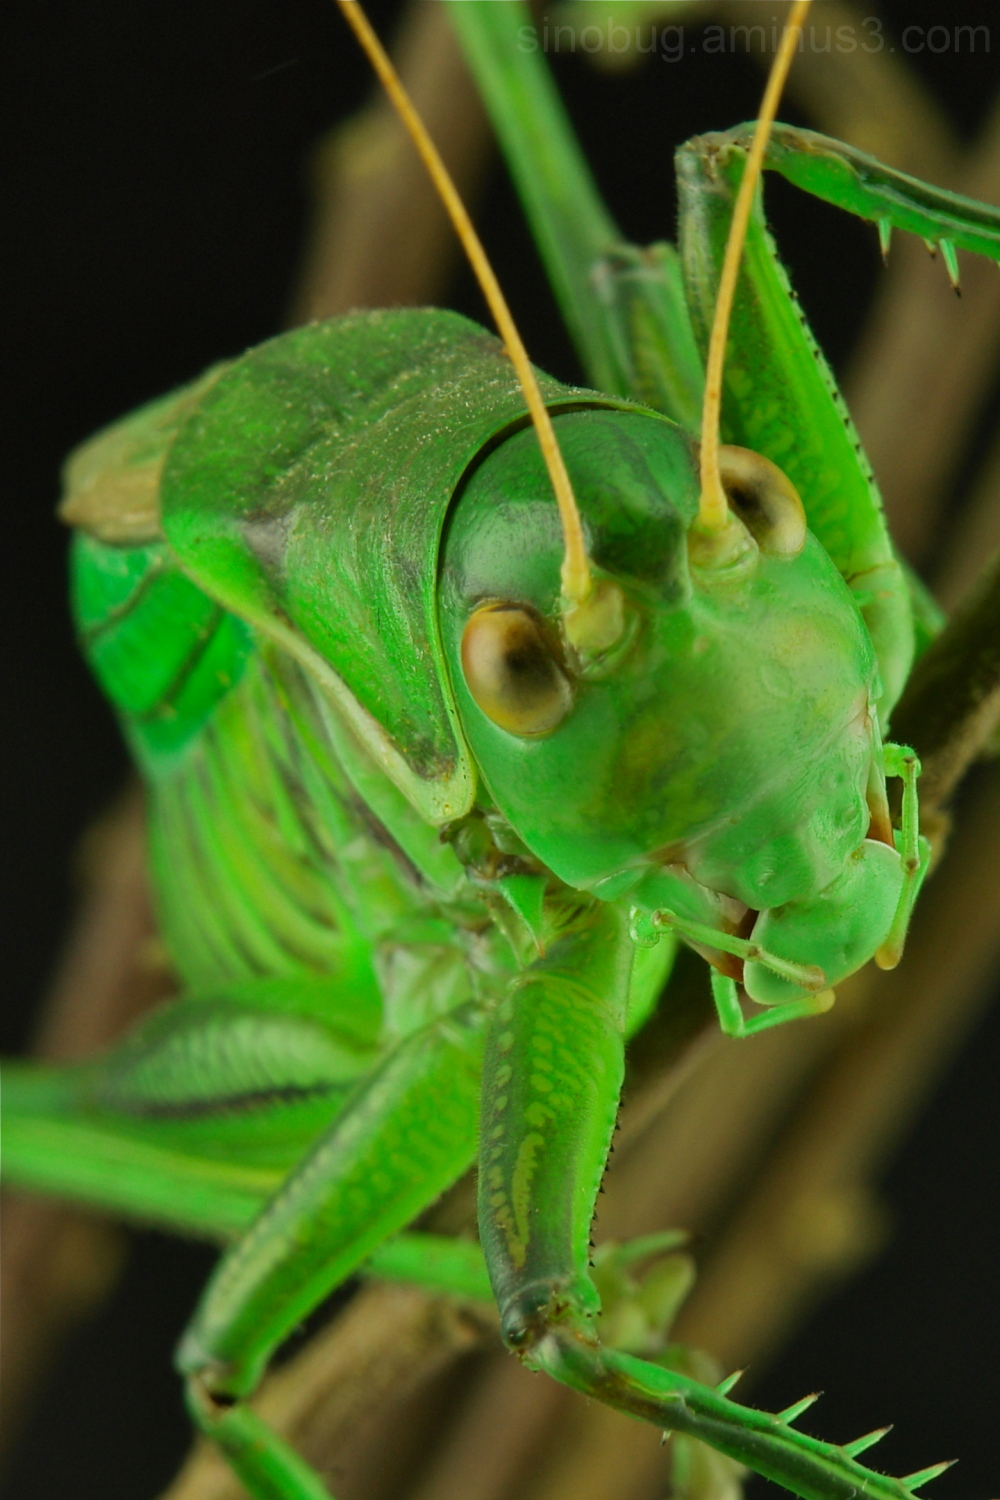 Chinese Bush Cricket Gampsocleis gratiosa katydid